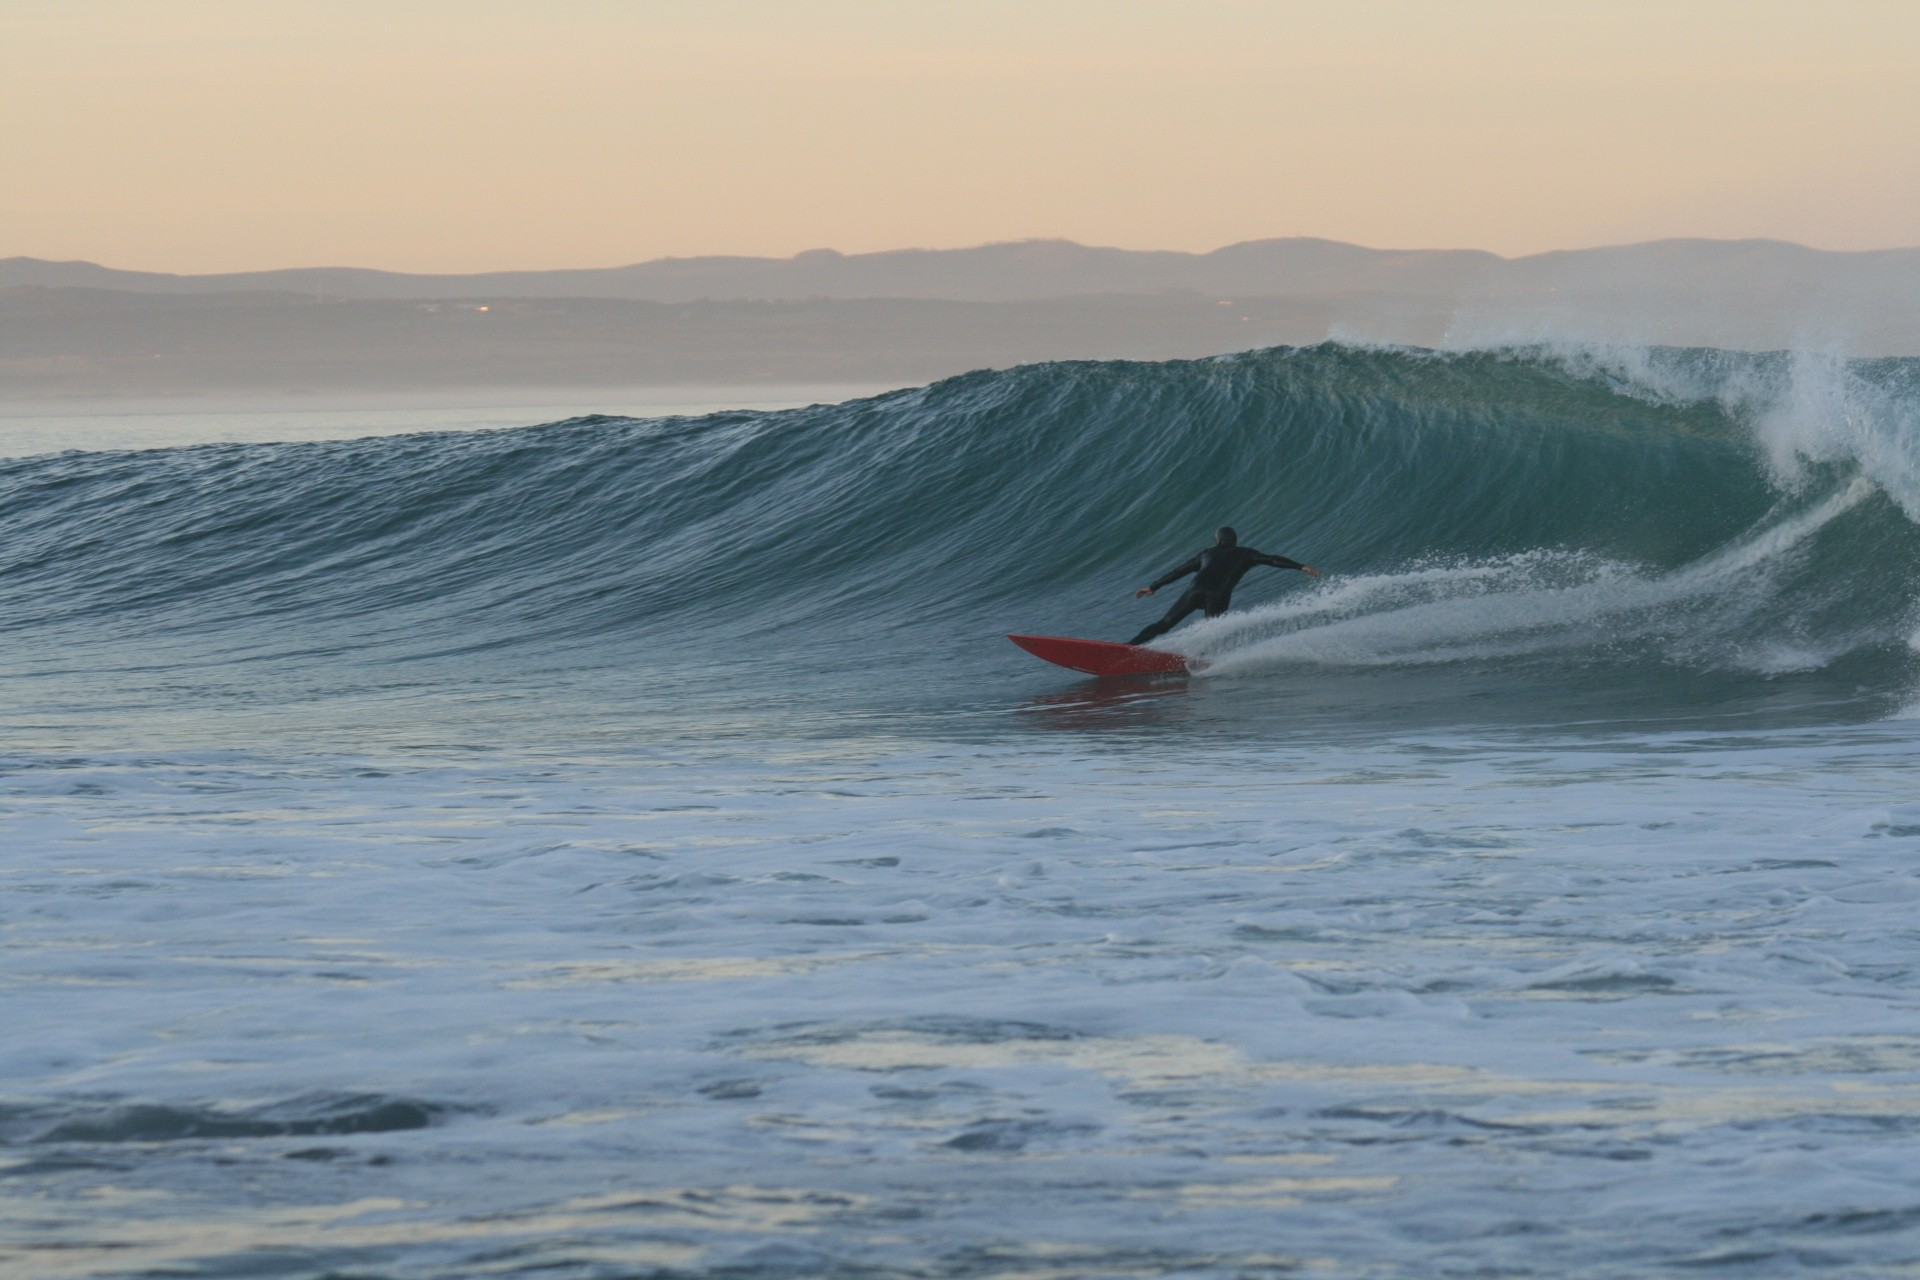 jason kavanagh's photo of Jeffreys Bay (J-Bay)